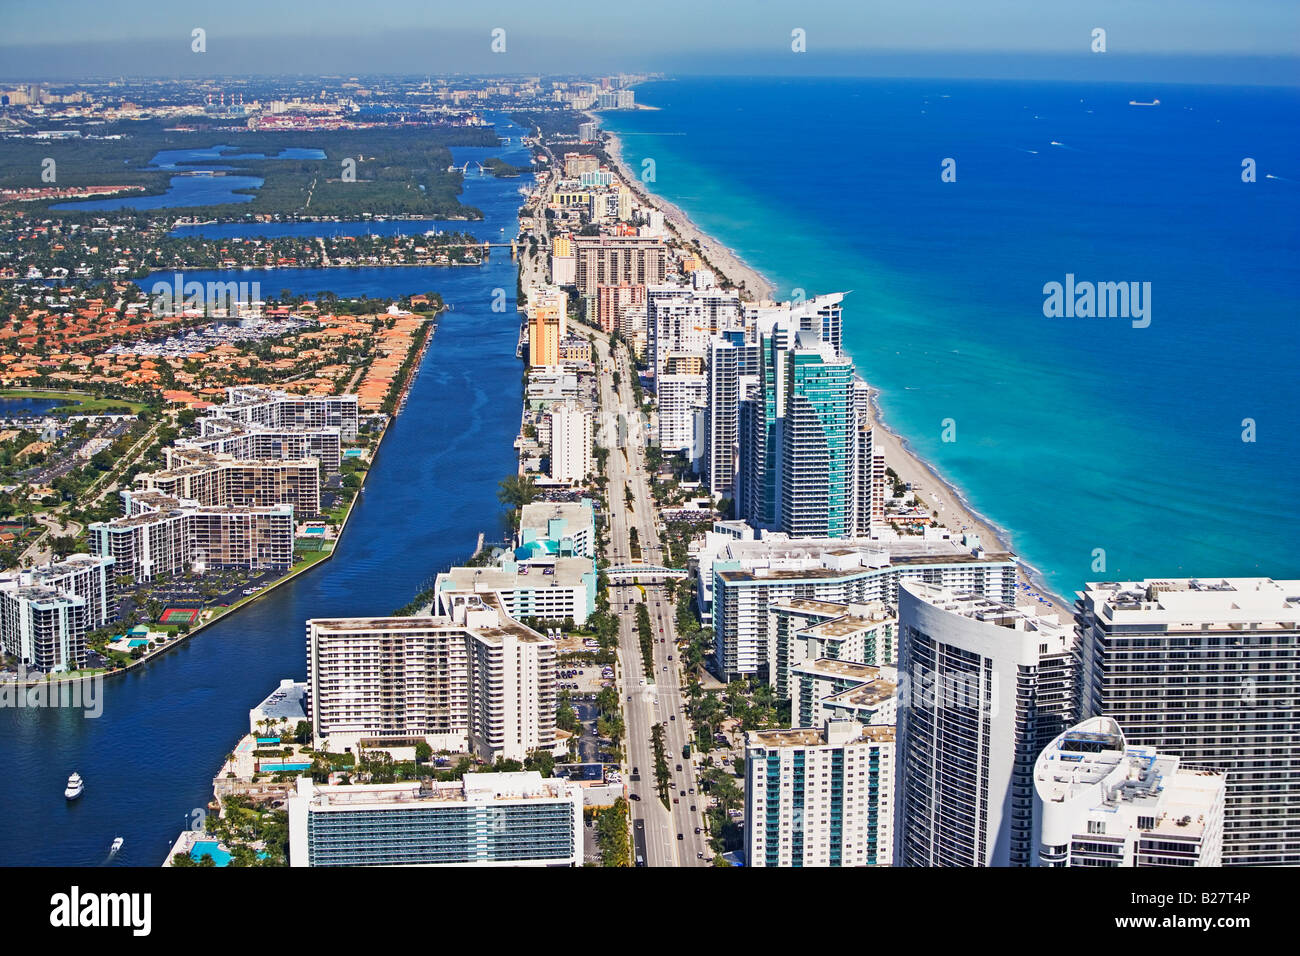 Aerial view of Fort Lauderdale, Florida, United States Stock Photo